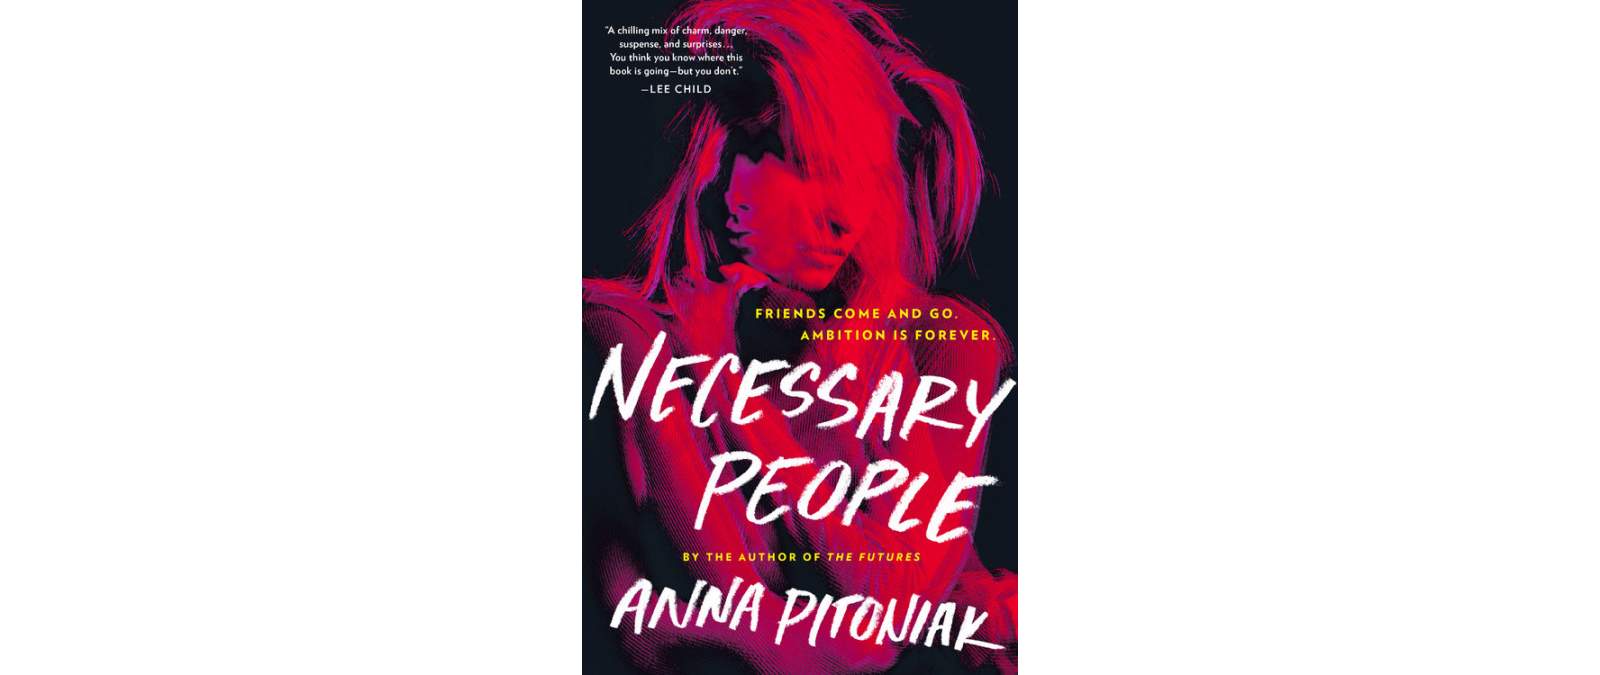 Cover of Necessary People, by Anna Pitoniak